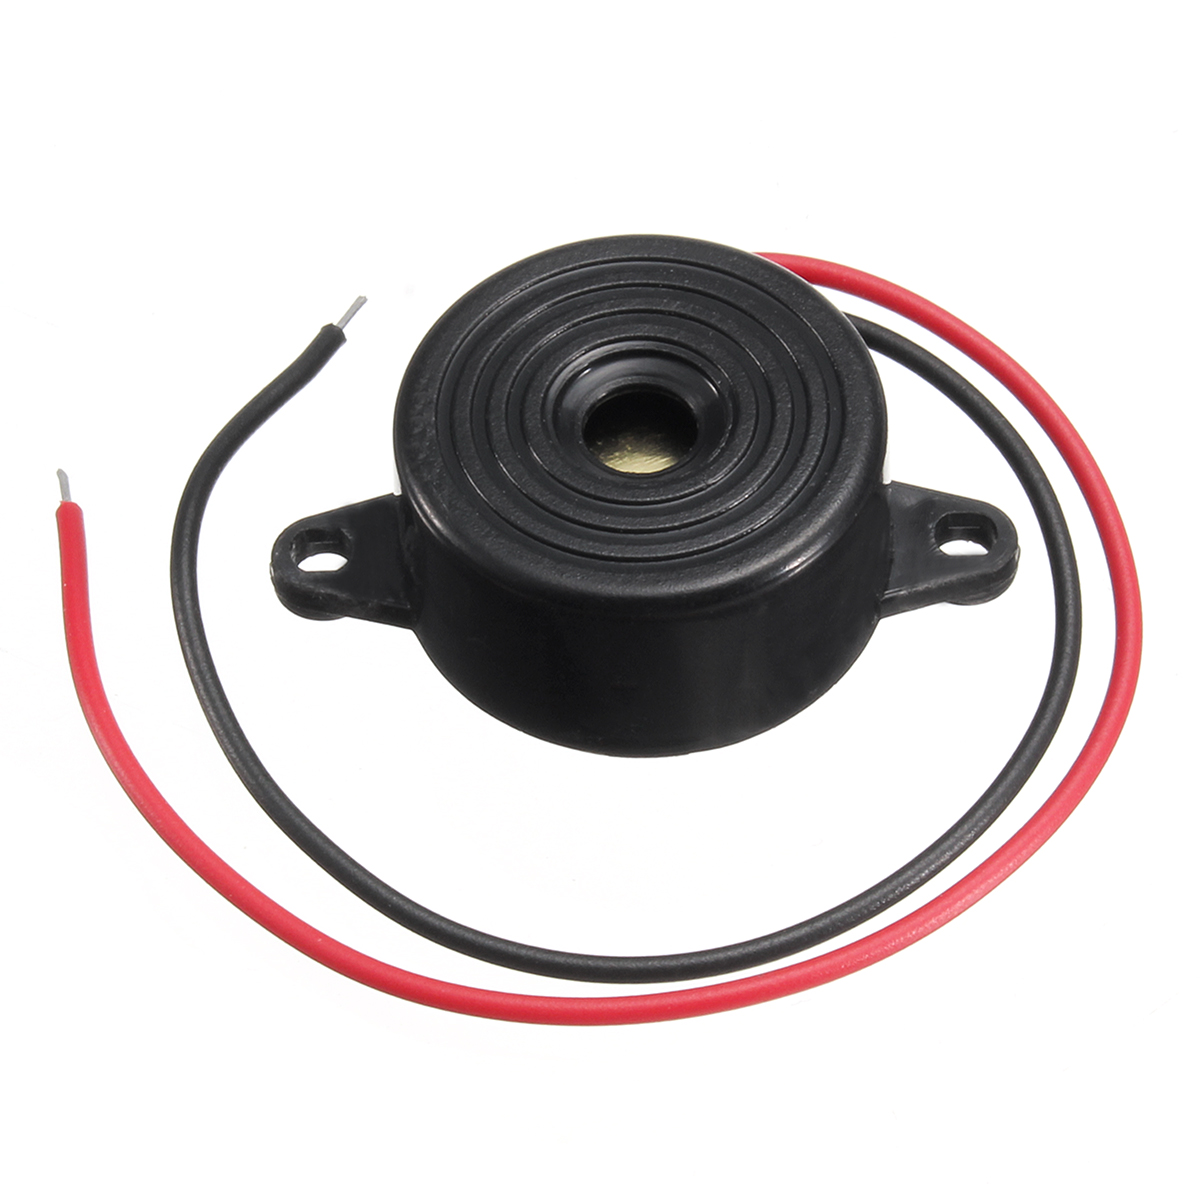 Image 3 - 3 24V Electric Buzzer Alarm Loud Speaker Warning Car Security Horn Automobile Siren Police Sirens Air Horn Electric Vehicle-in Multi-tone & Claxon Horns from Automobiles & Motorcycles